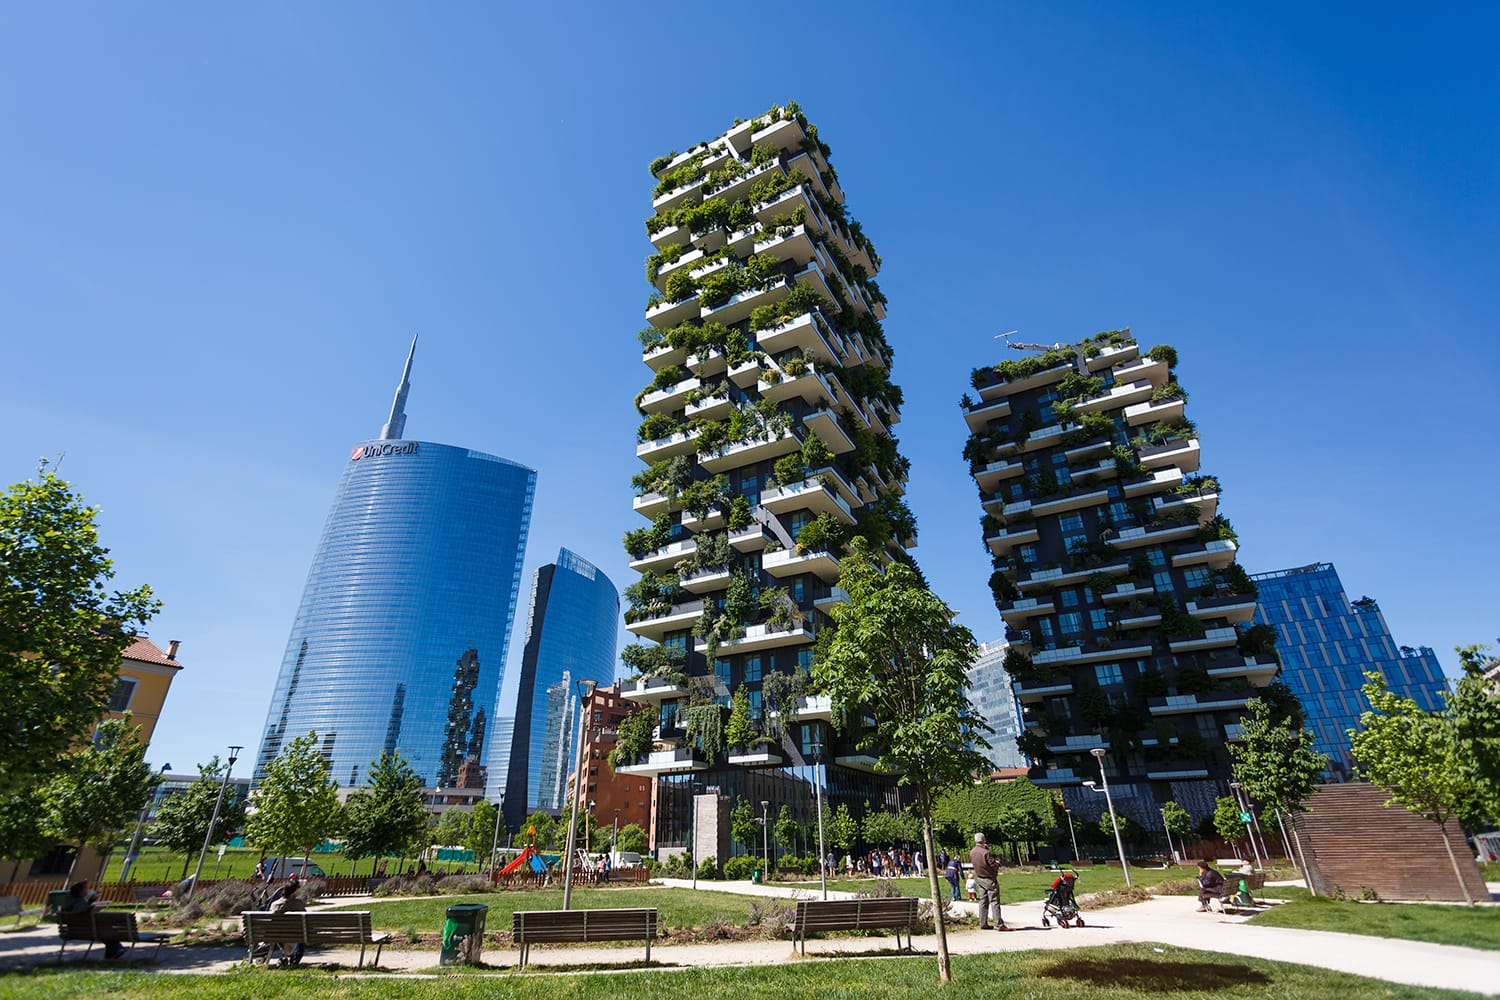 Bosco Verticale, vertical forest apartment buildings in Milan, Italy